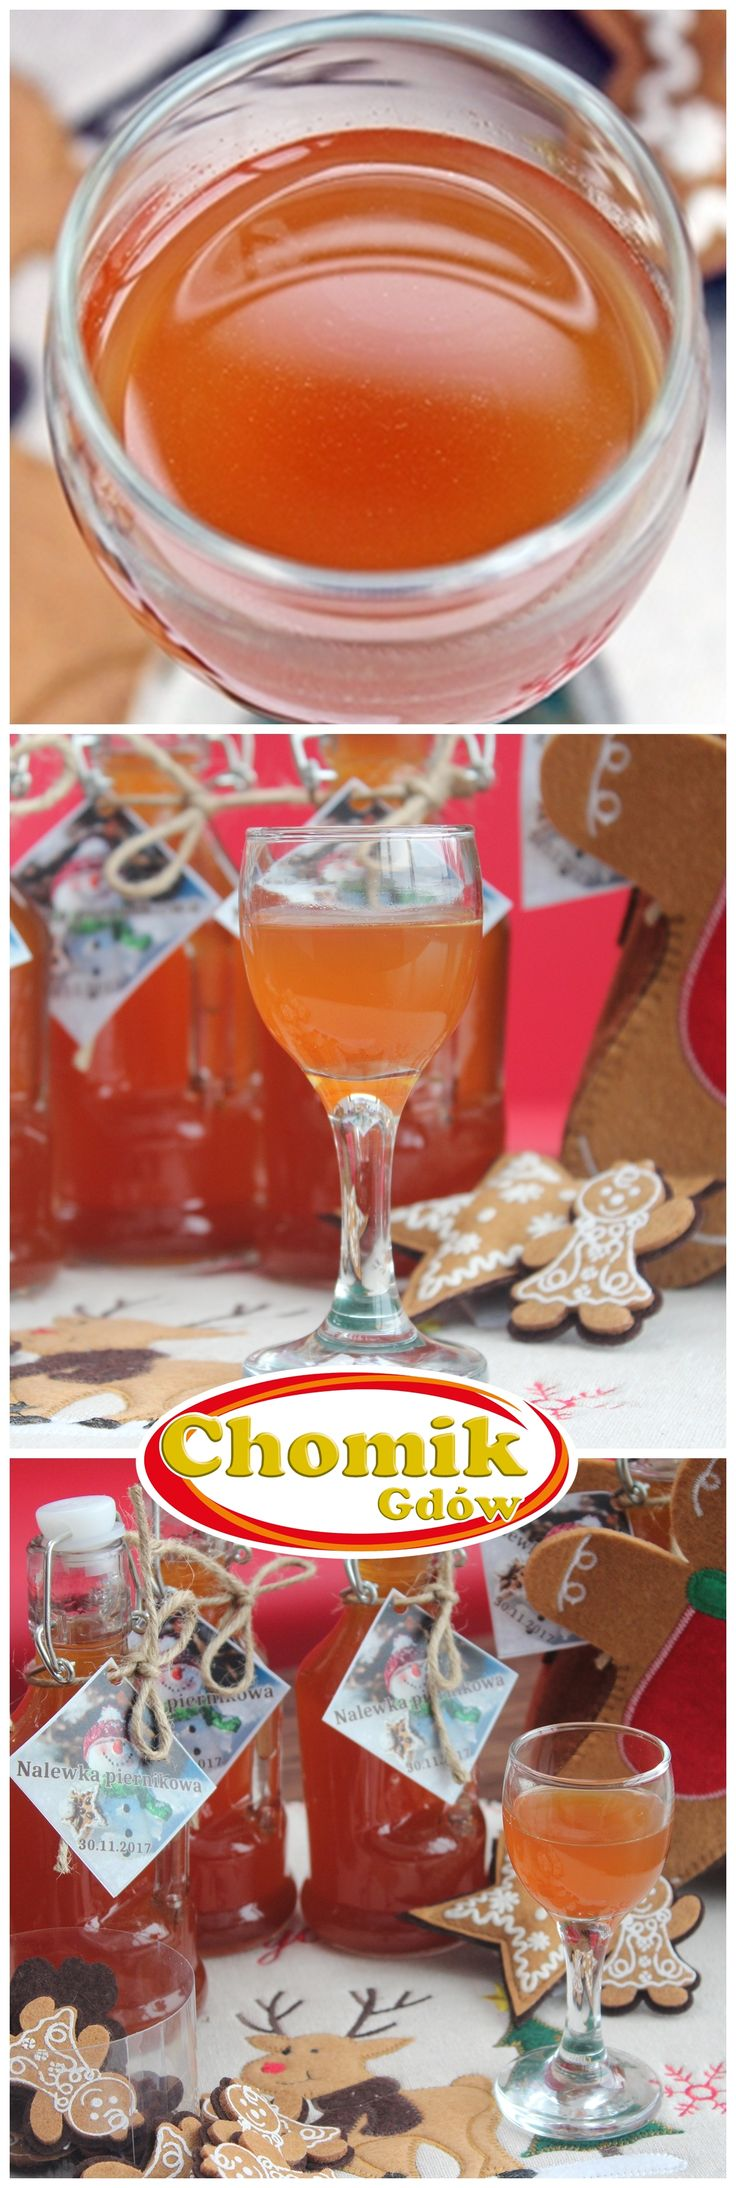 Gingerbread cordial